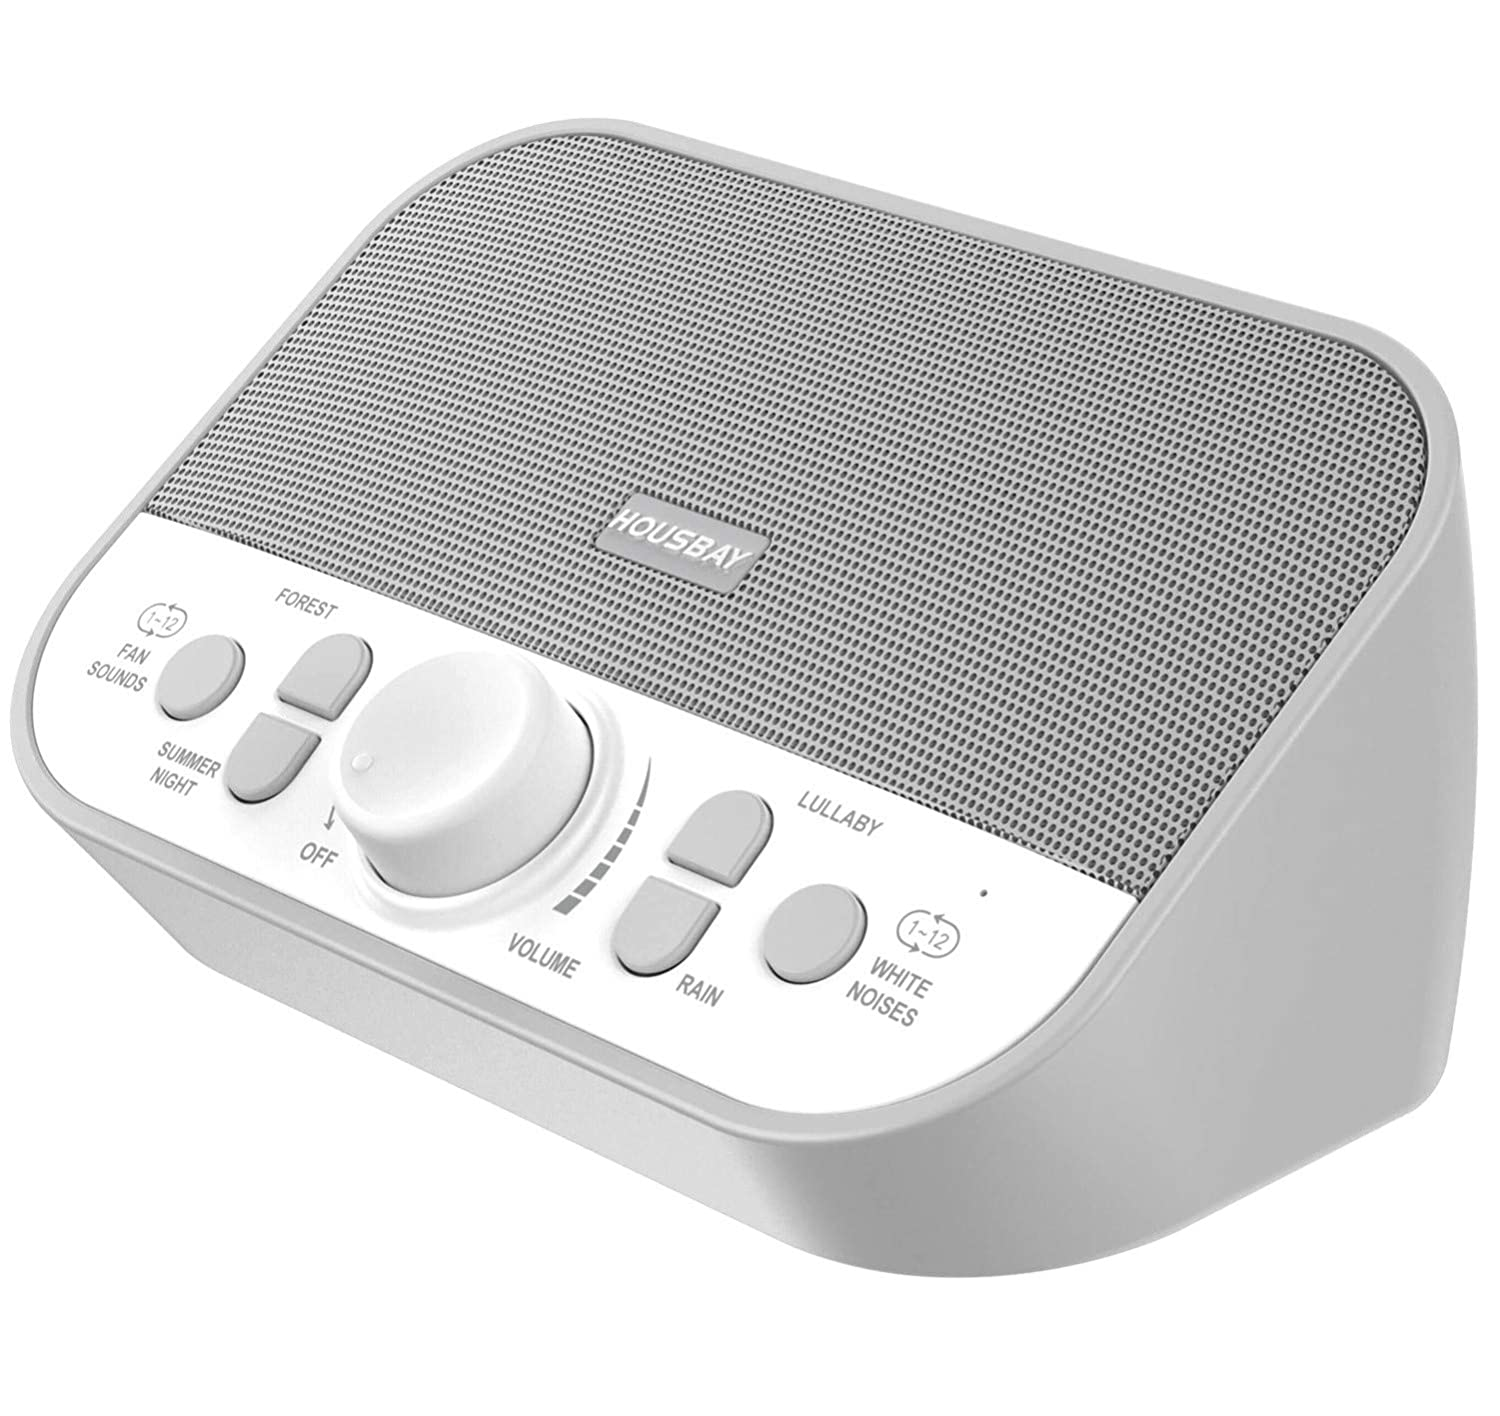 Housbay Sound Machine - White Noise Machine for Sleeping with 28 Soothing Sounds